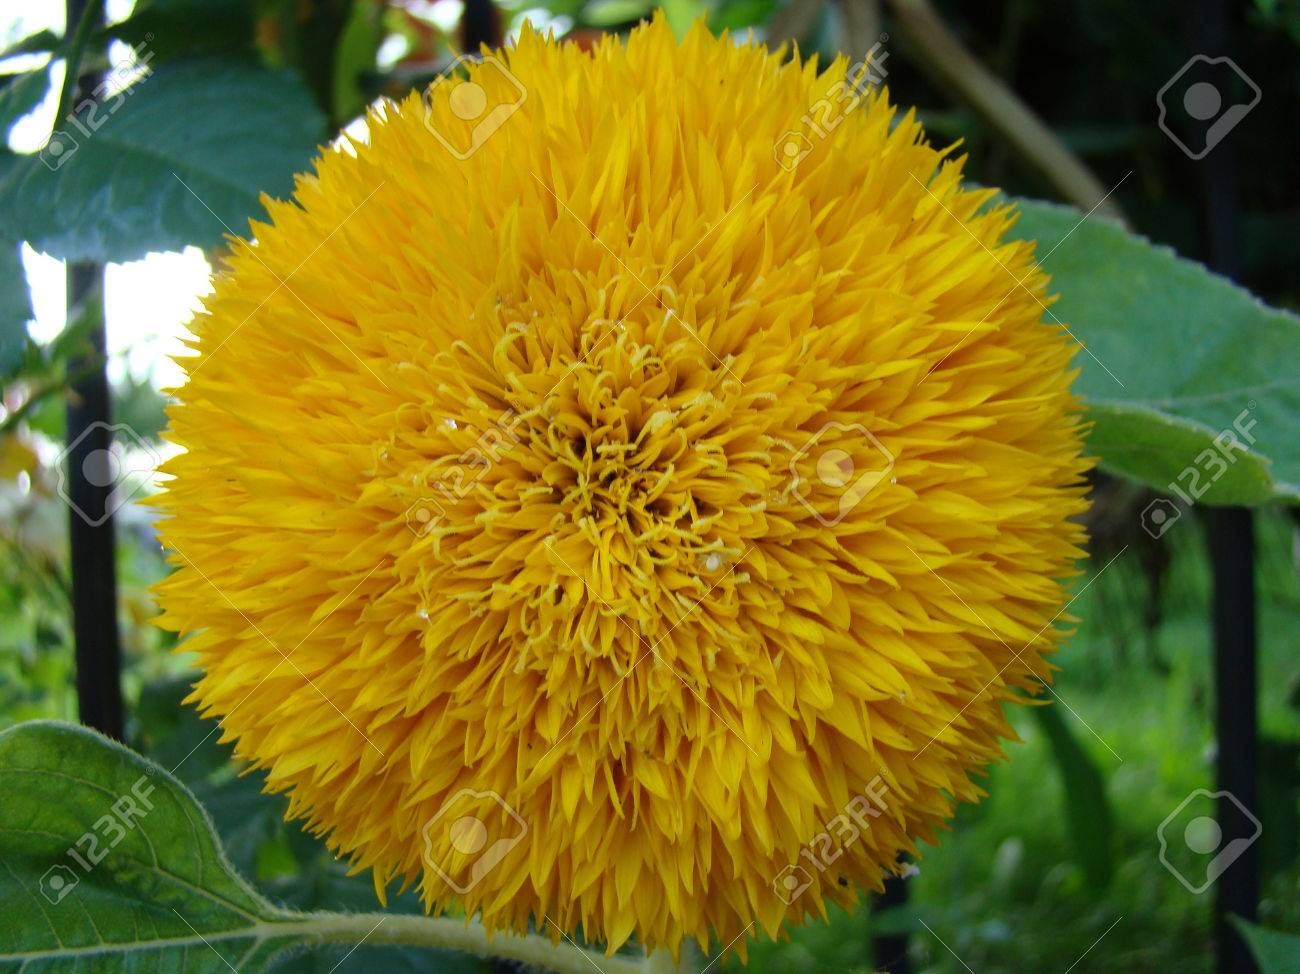 A type of sunflowernflower yellow flower can be of different a type of sunflowernflower yellow flower can be of different types as a decorative mightylinksfo